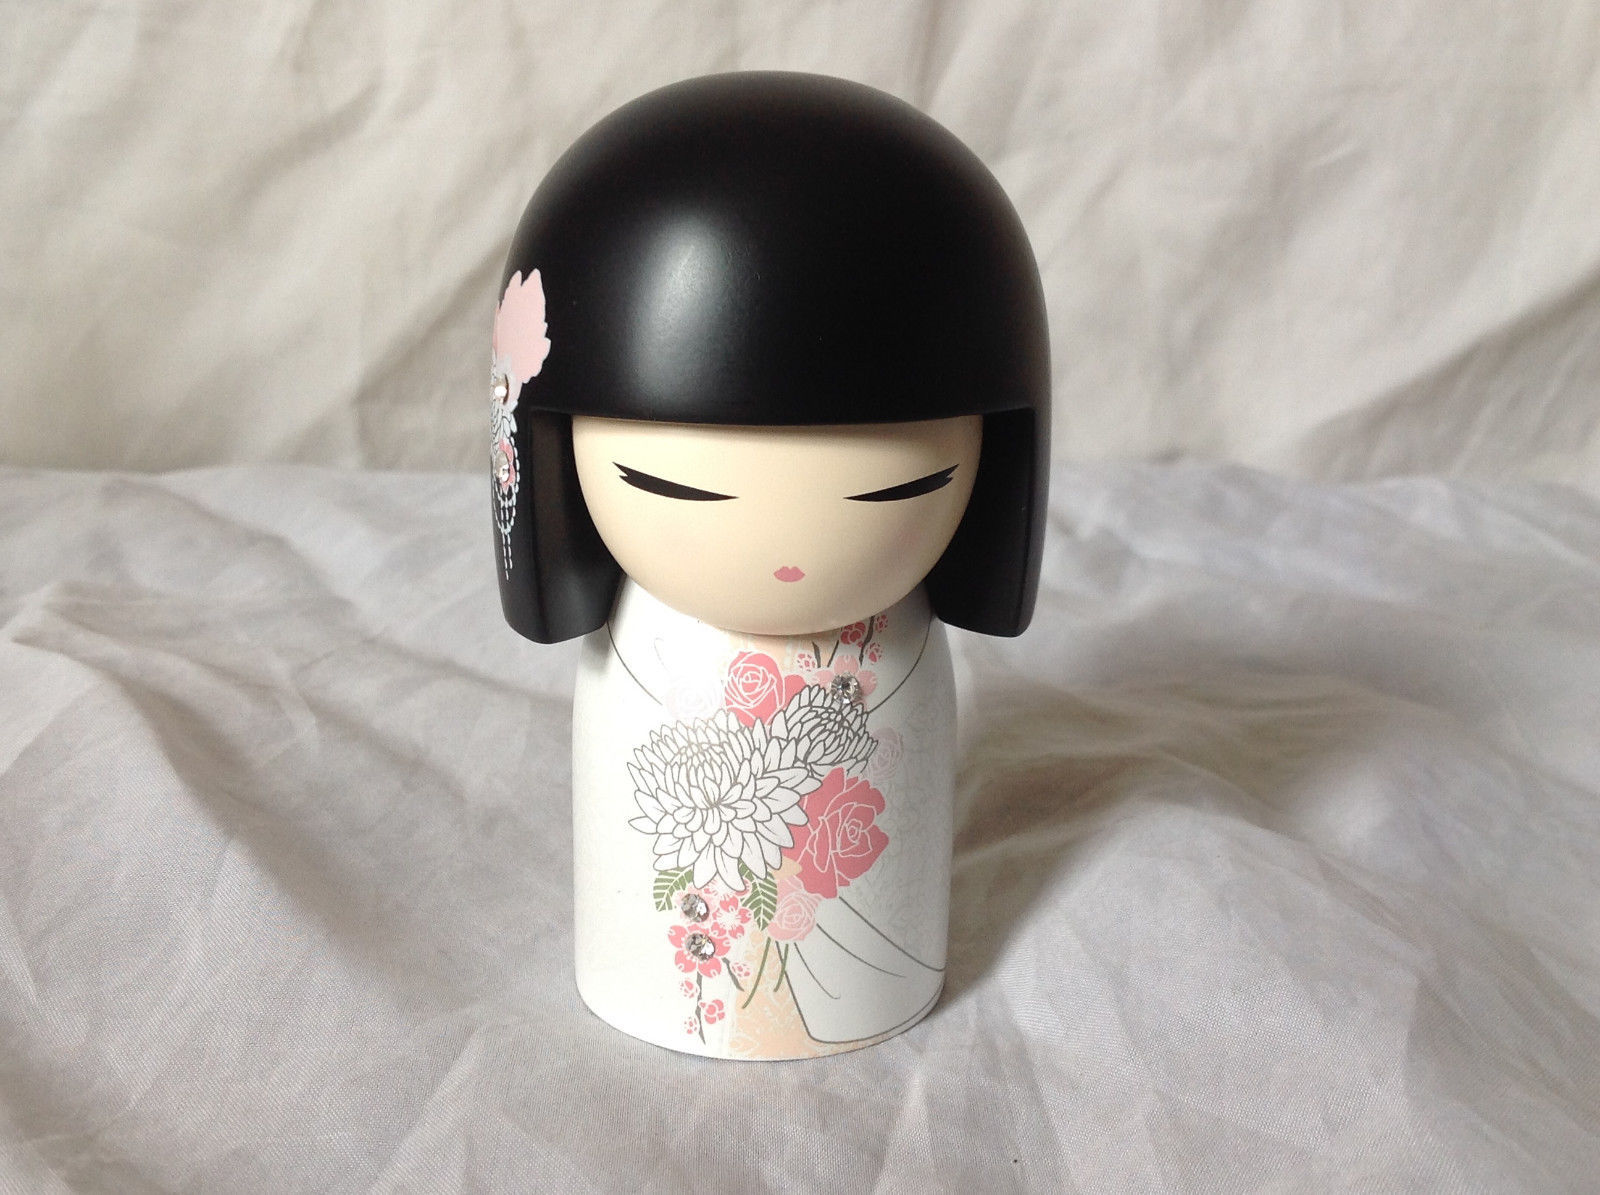 Special Edition Kimmi Maxi Doll Kotomi Beautiful Bride Asian Style